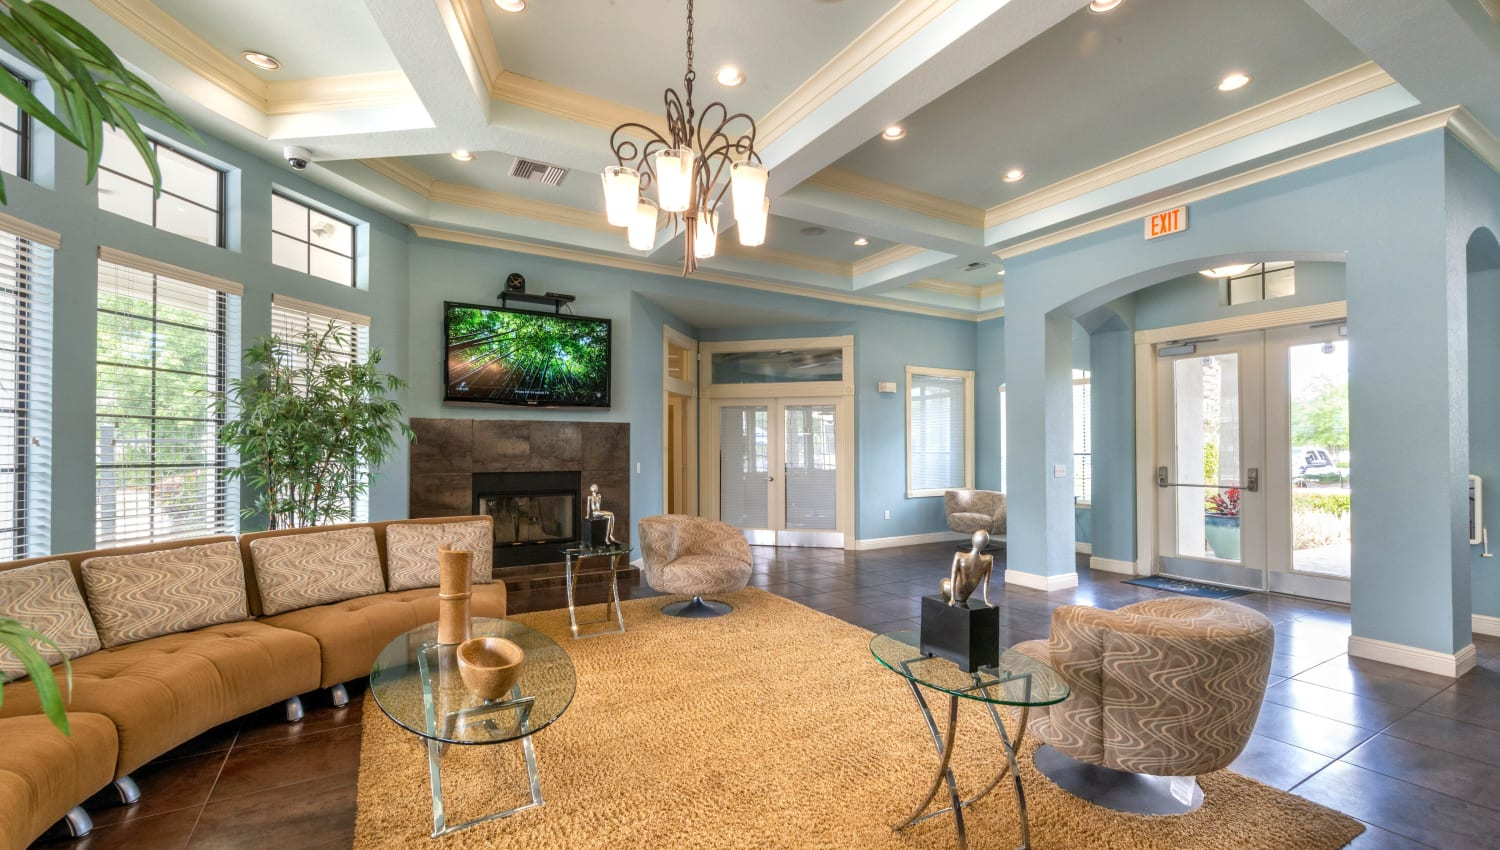 Luxurious clubhouse lounge in front of the fireplace at Mirador & Stovall at River City in Jacksonville, Florida